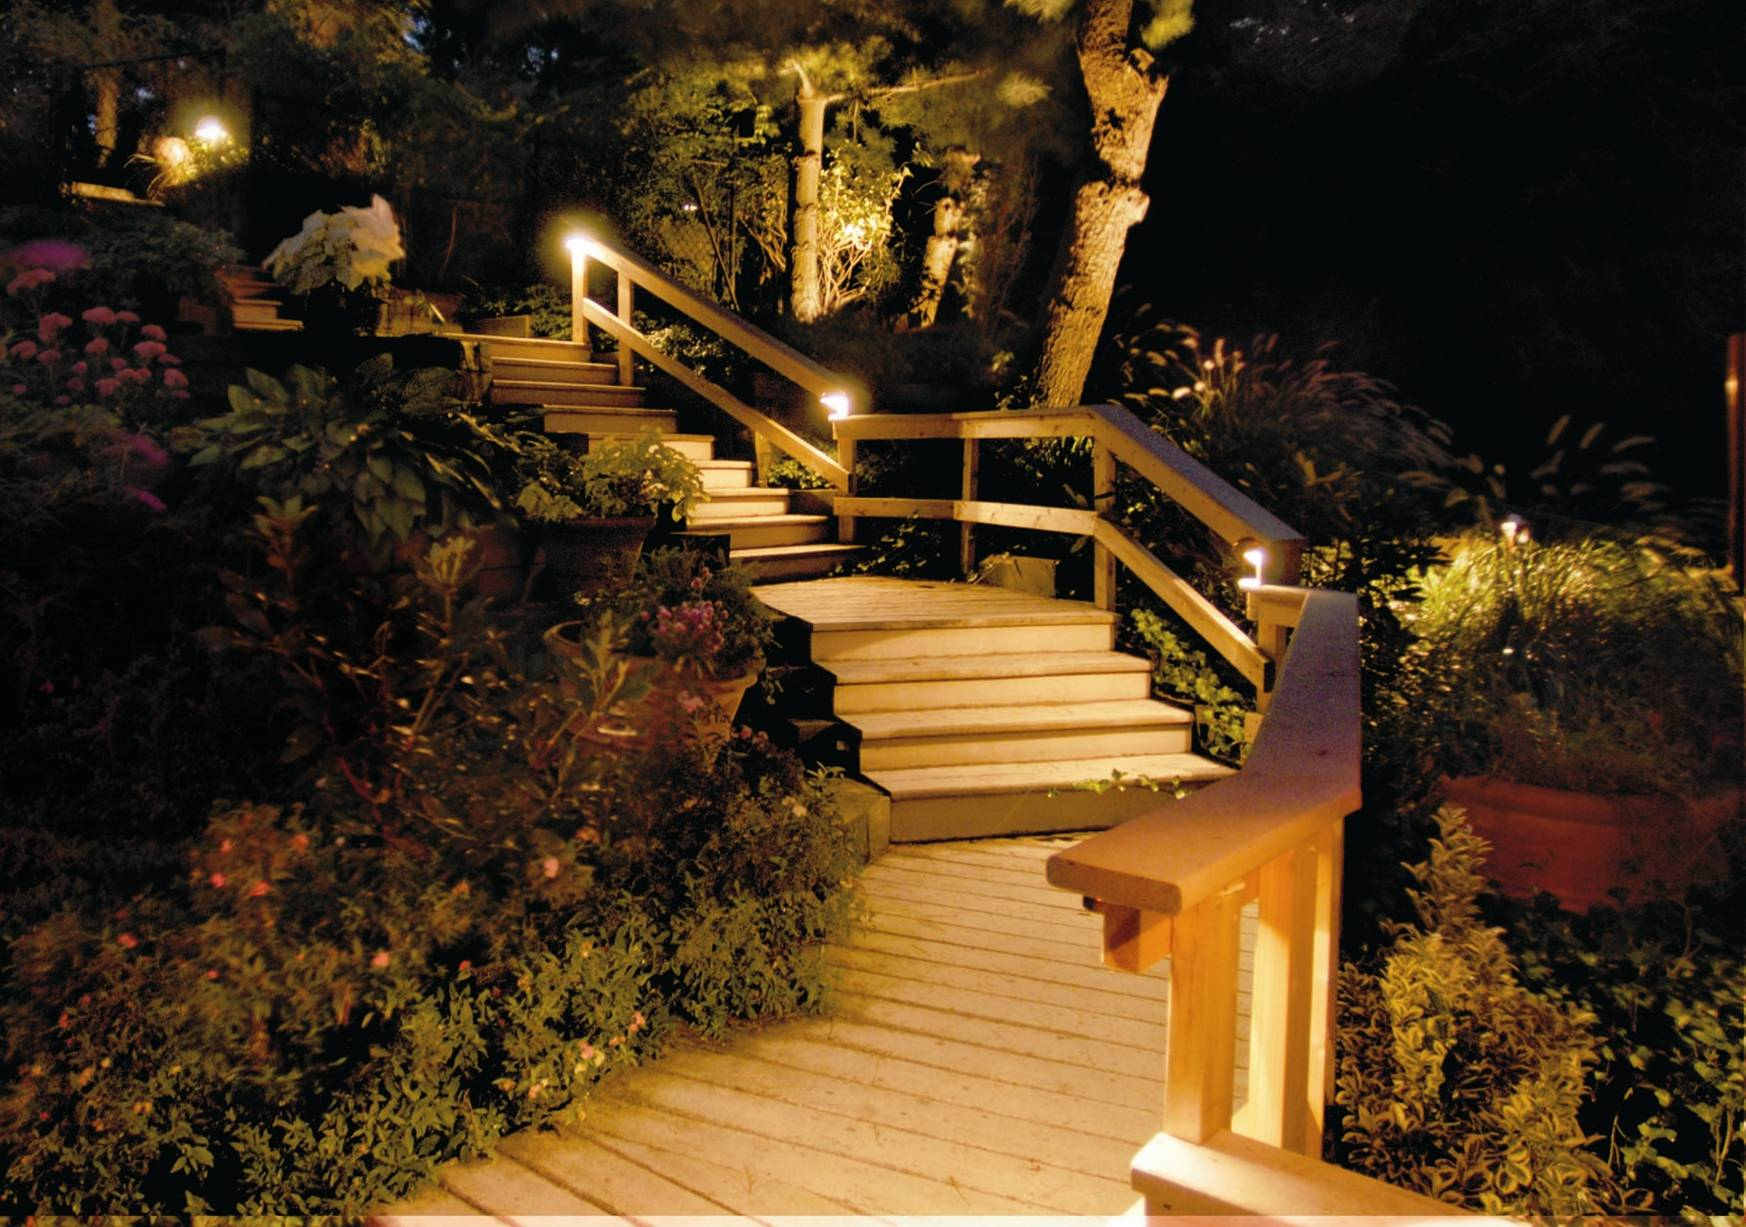 Denver deck and patio lighting outdoor lighting perspectives - How to design outdoor lighting plan ...